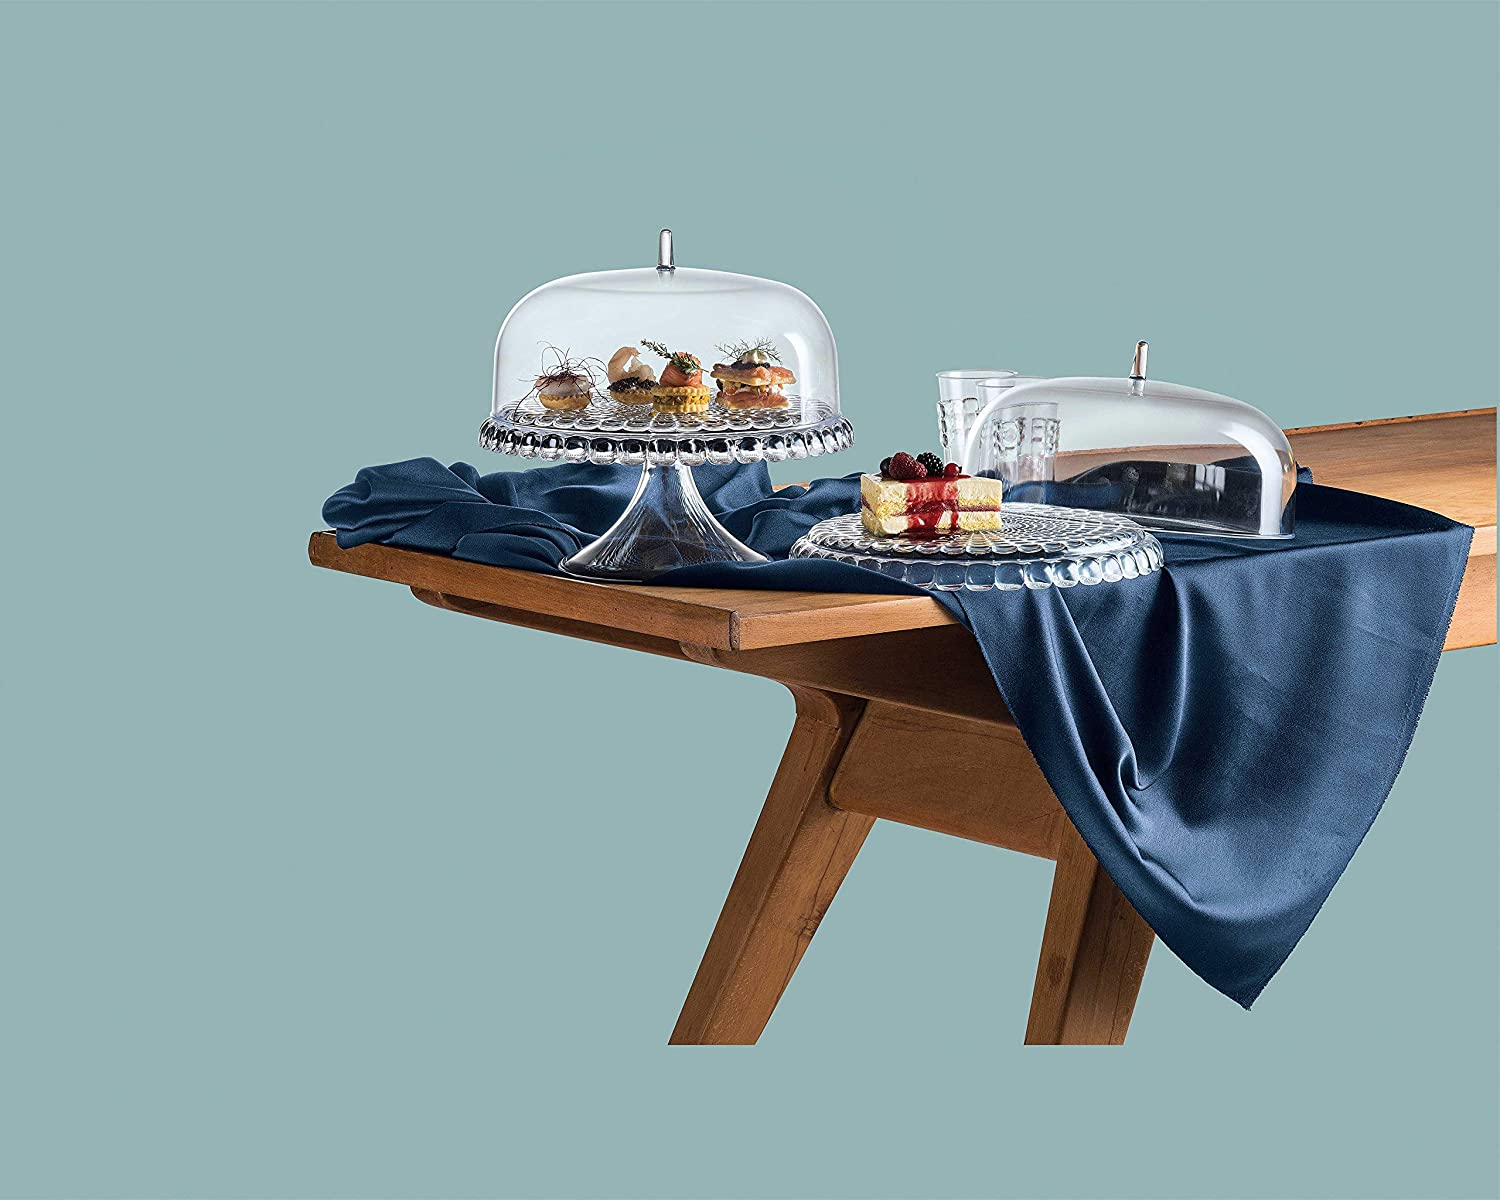 30 x .16 cm SMMA Guzzini Stands and Cake Serving Sets